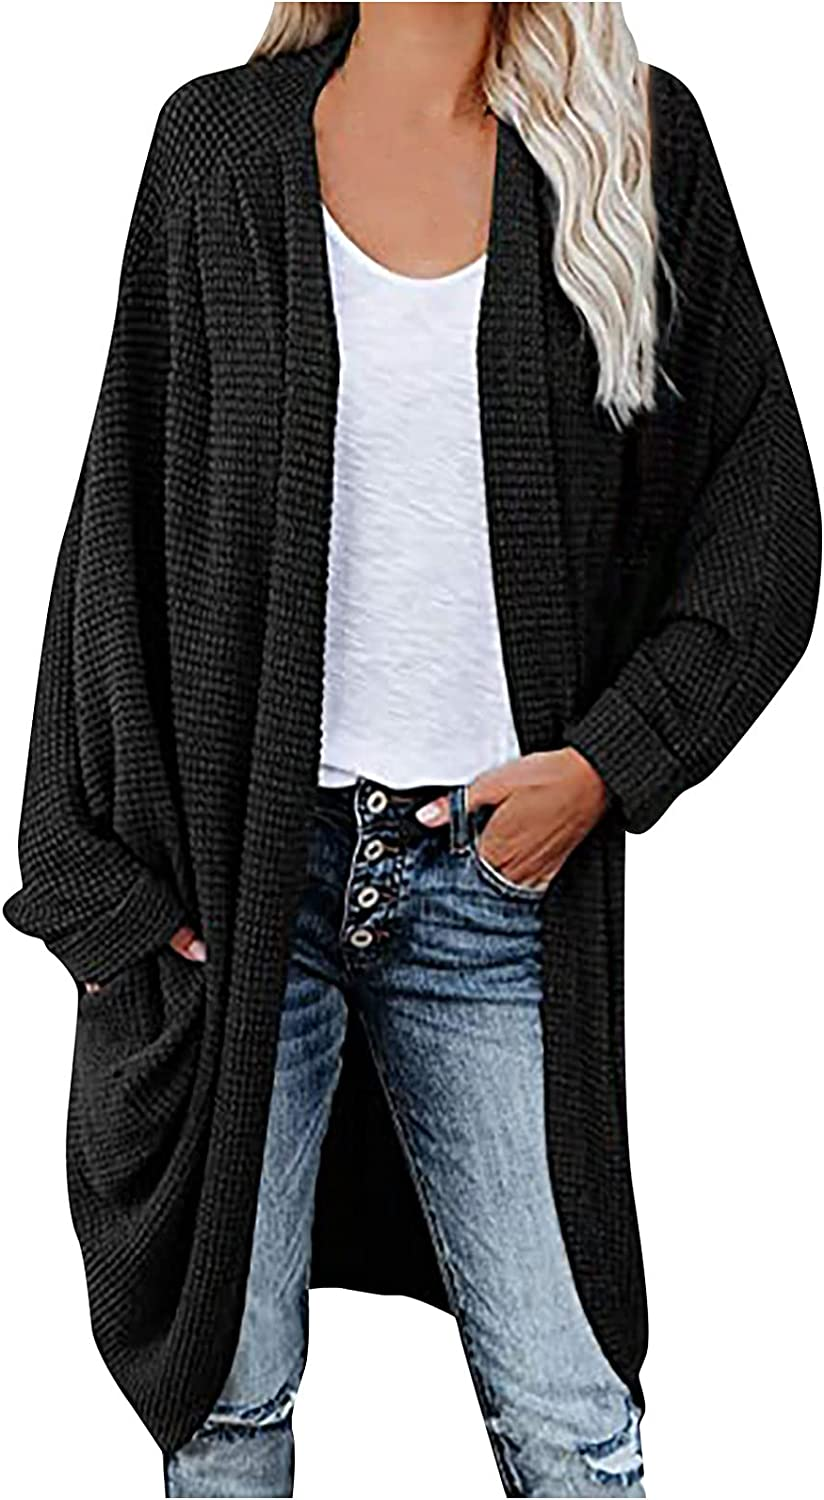 Women Casual Knitted Lightweight Cardigans Fashion Comfy Long Sleeve Oversized Open Front Plain Sweaters Fall Clothes